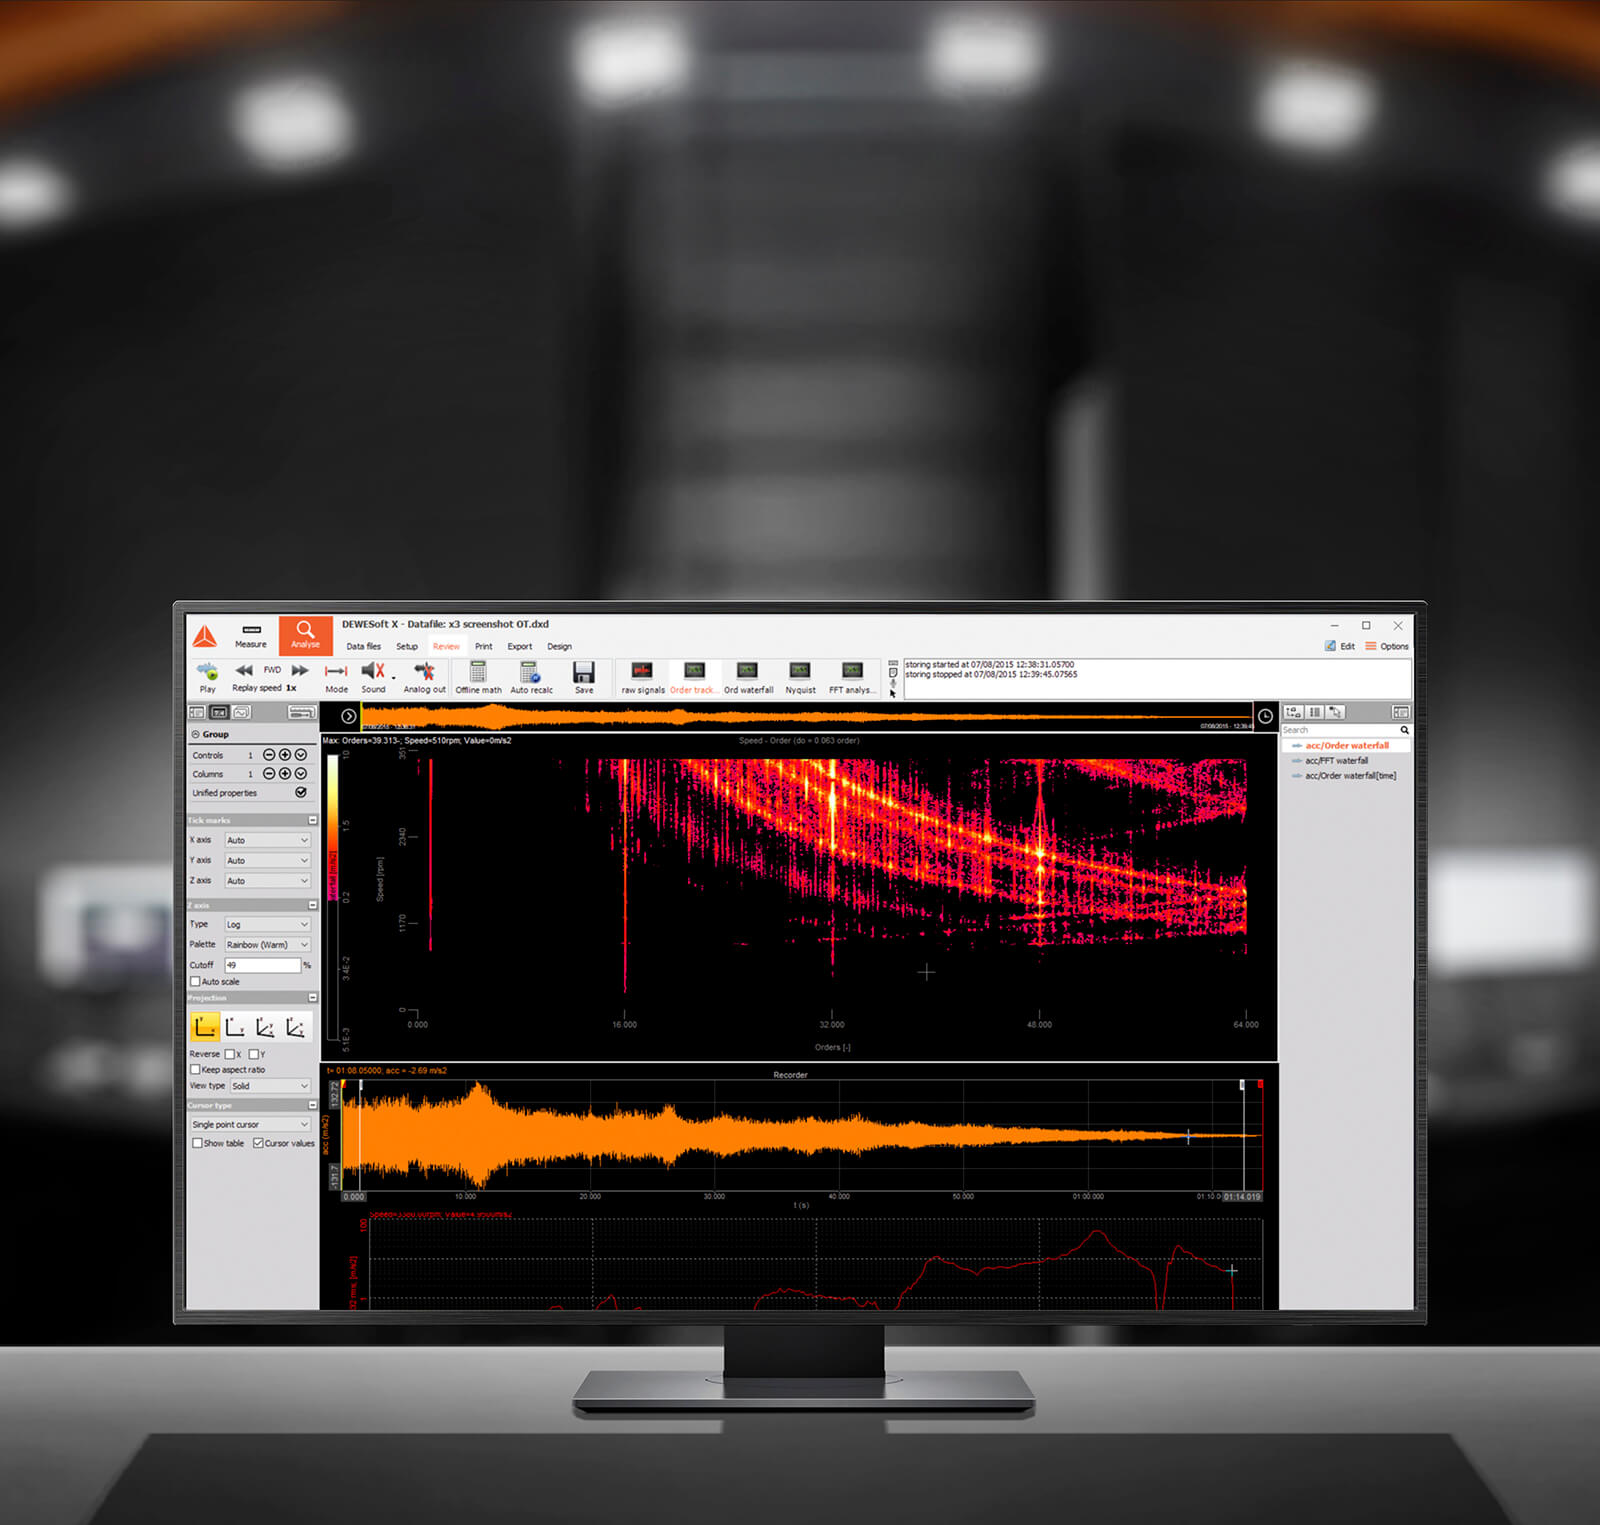 Recording and Signal Processing Software Included